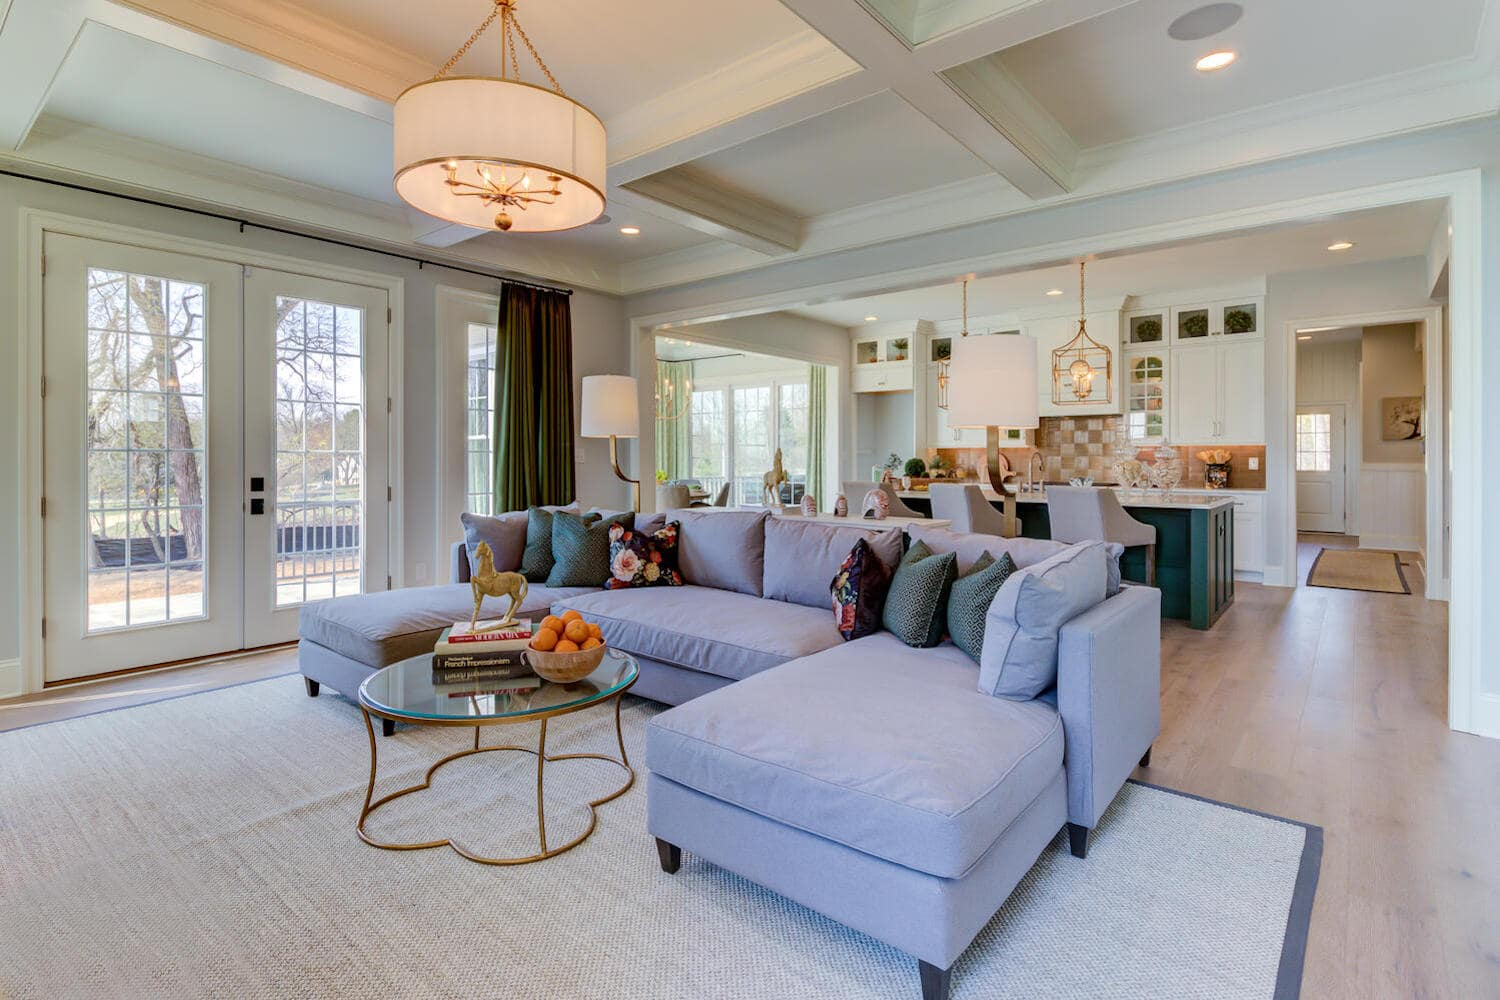 Interior gathering room in a new home from Bentley Homes.